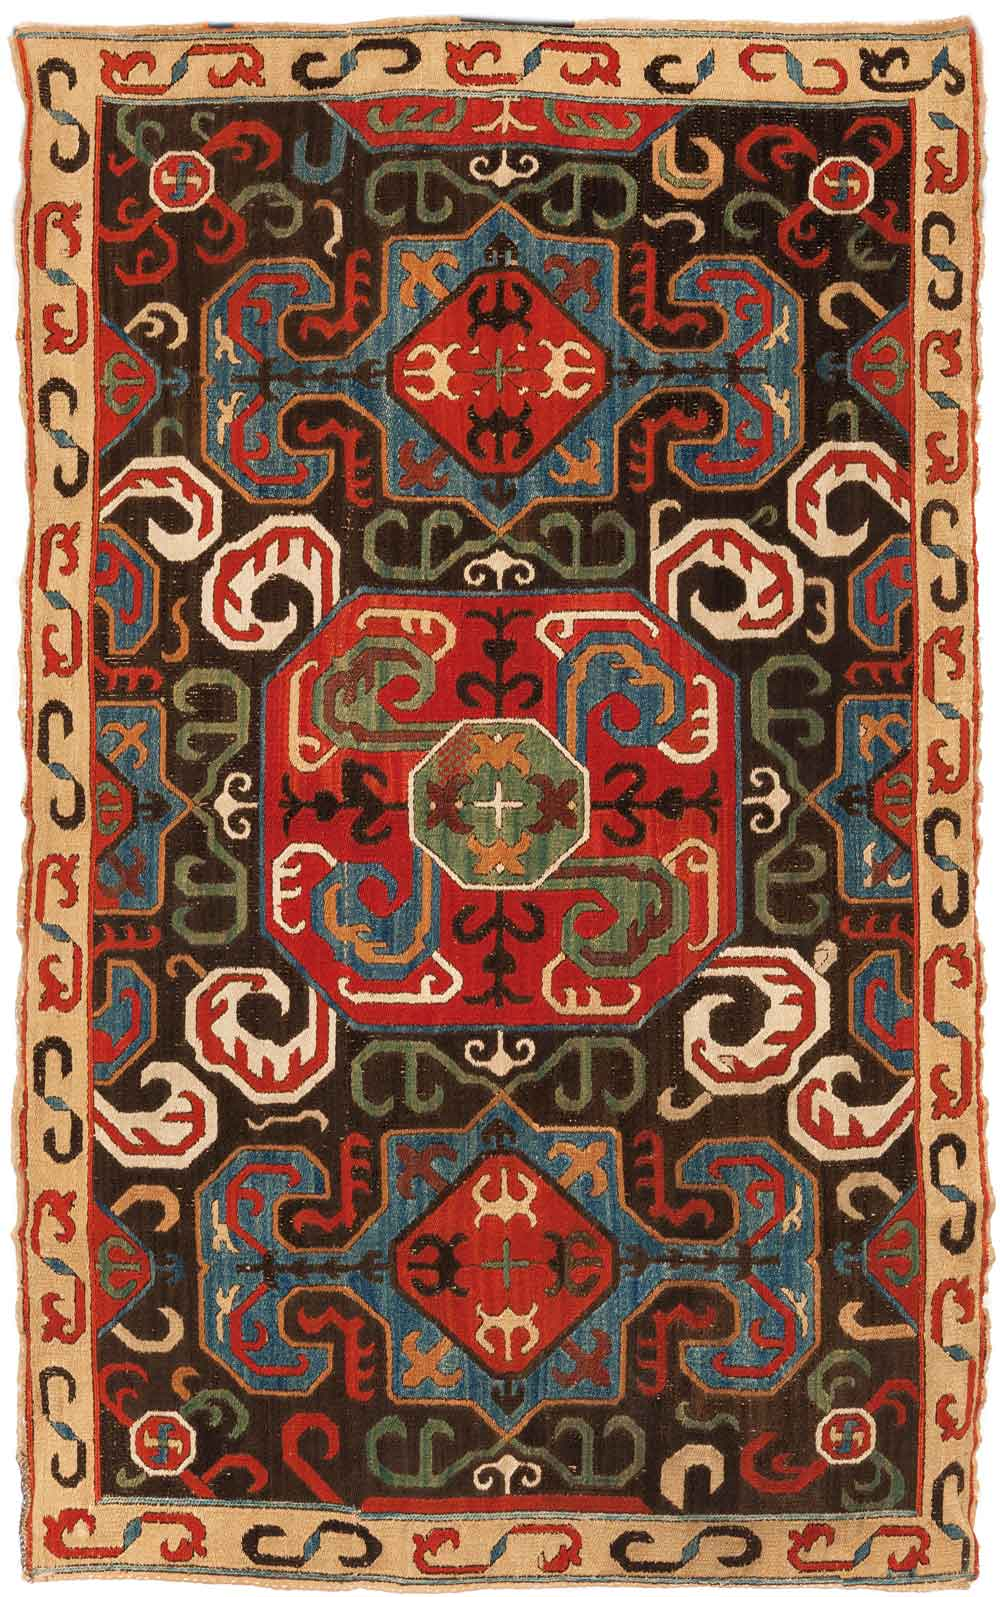 Kashmir Shawls And Other Antique Textiles From The Nemati